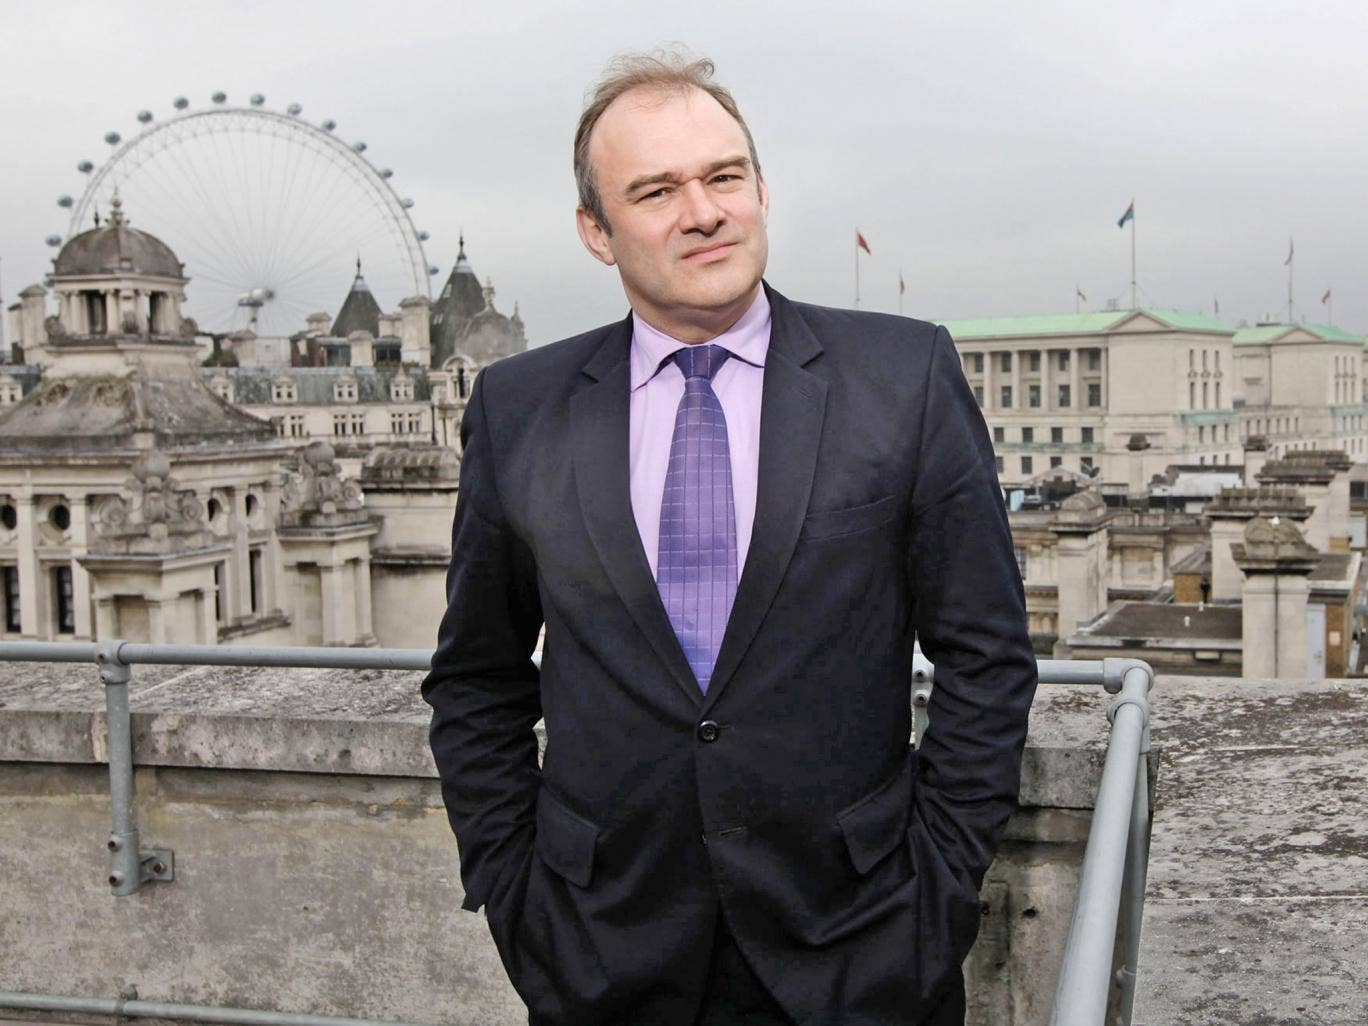 Ed Davey wants Britain to play a key role in tackling climate change